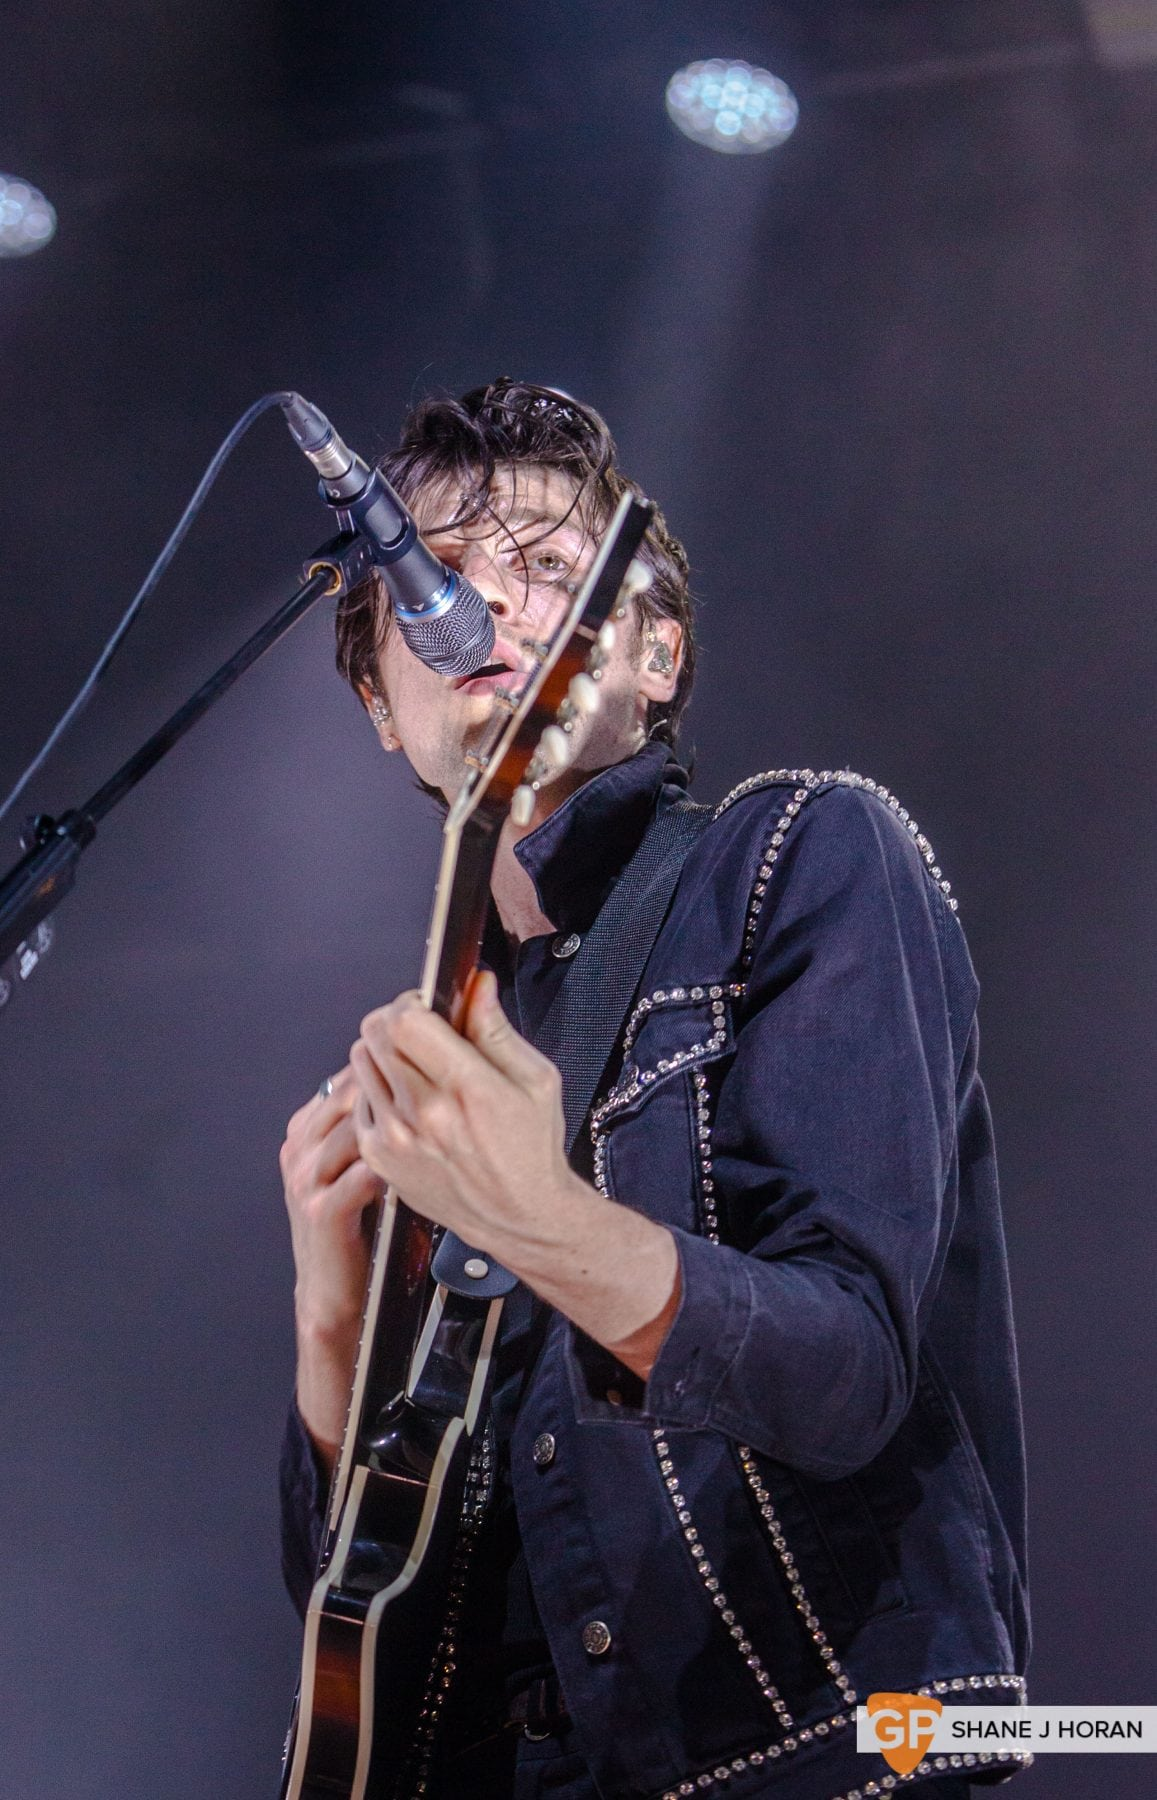 James Bay, Marquee, Shane J Horan, 27-6-18 (22 of 26)